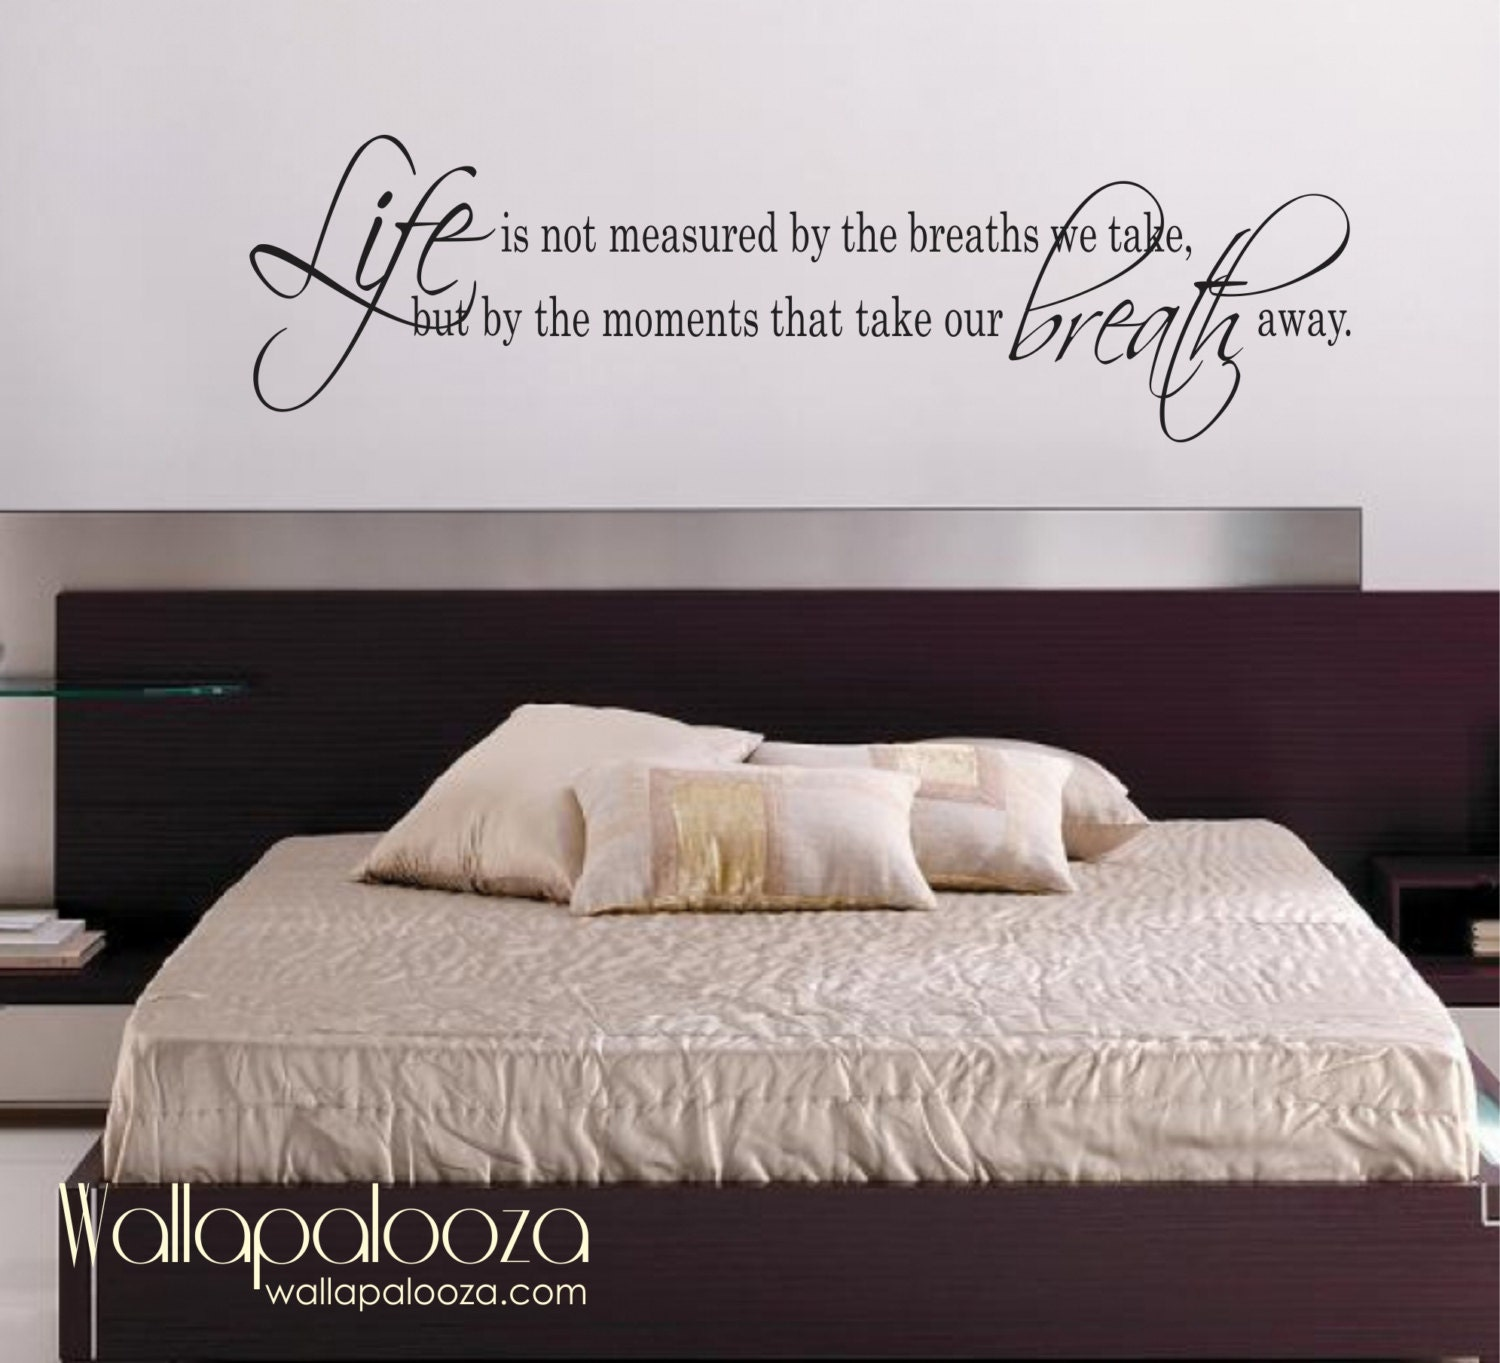 Life Is Not Measured Wall Decal Love Wall Decal Bedroom Wall Decal Inspirational